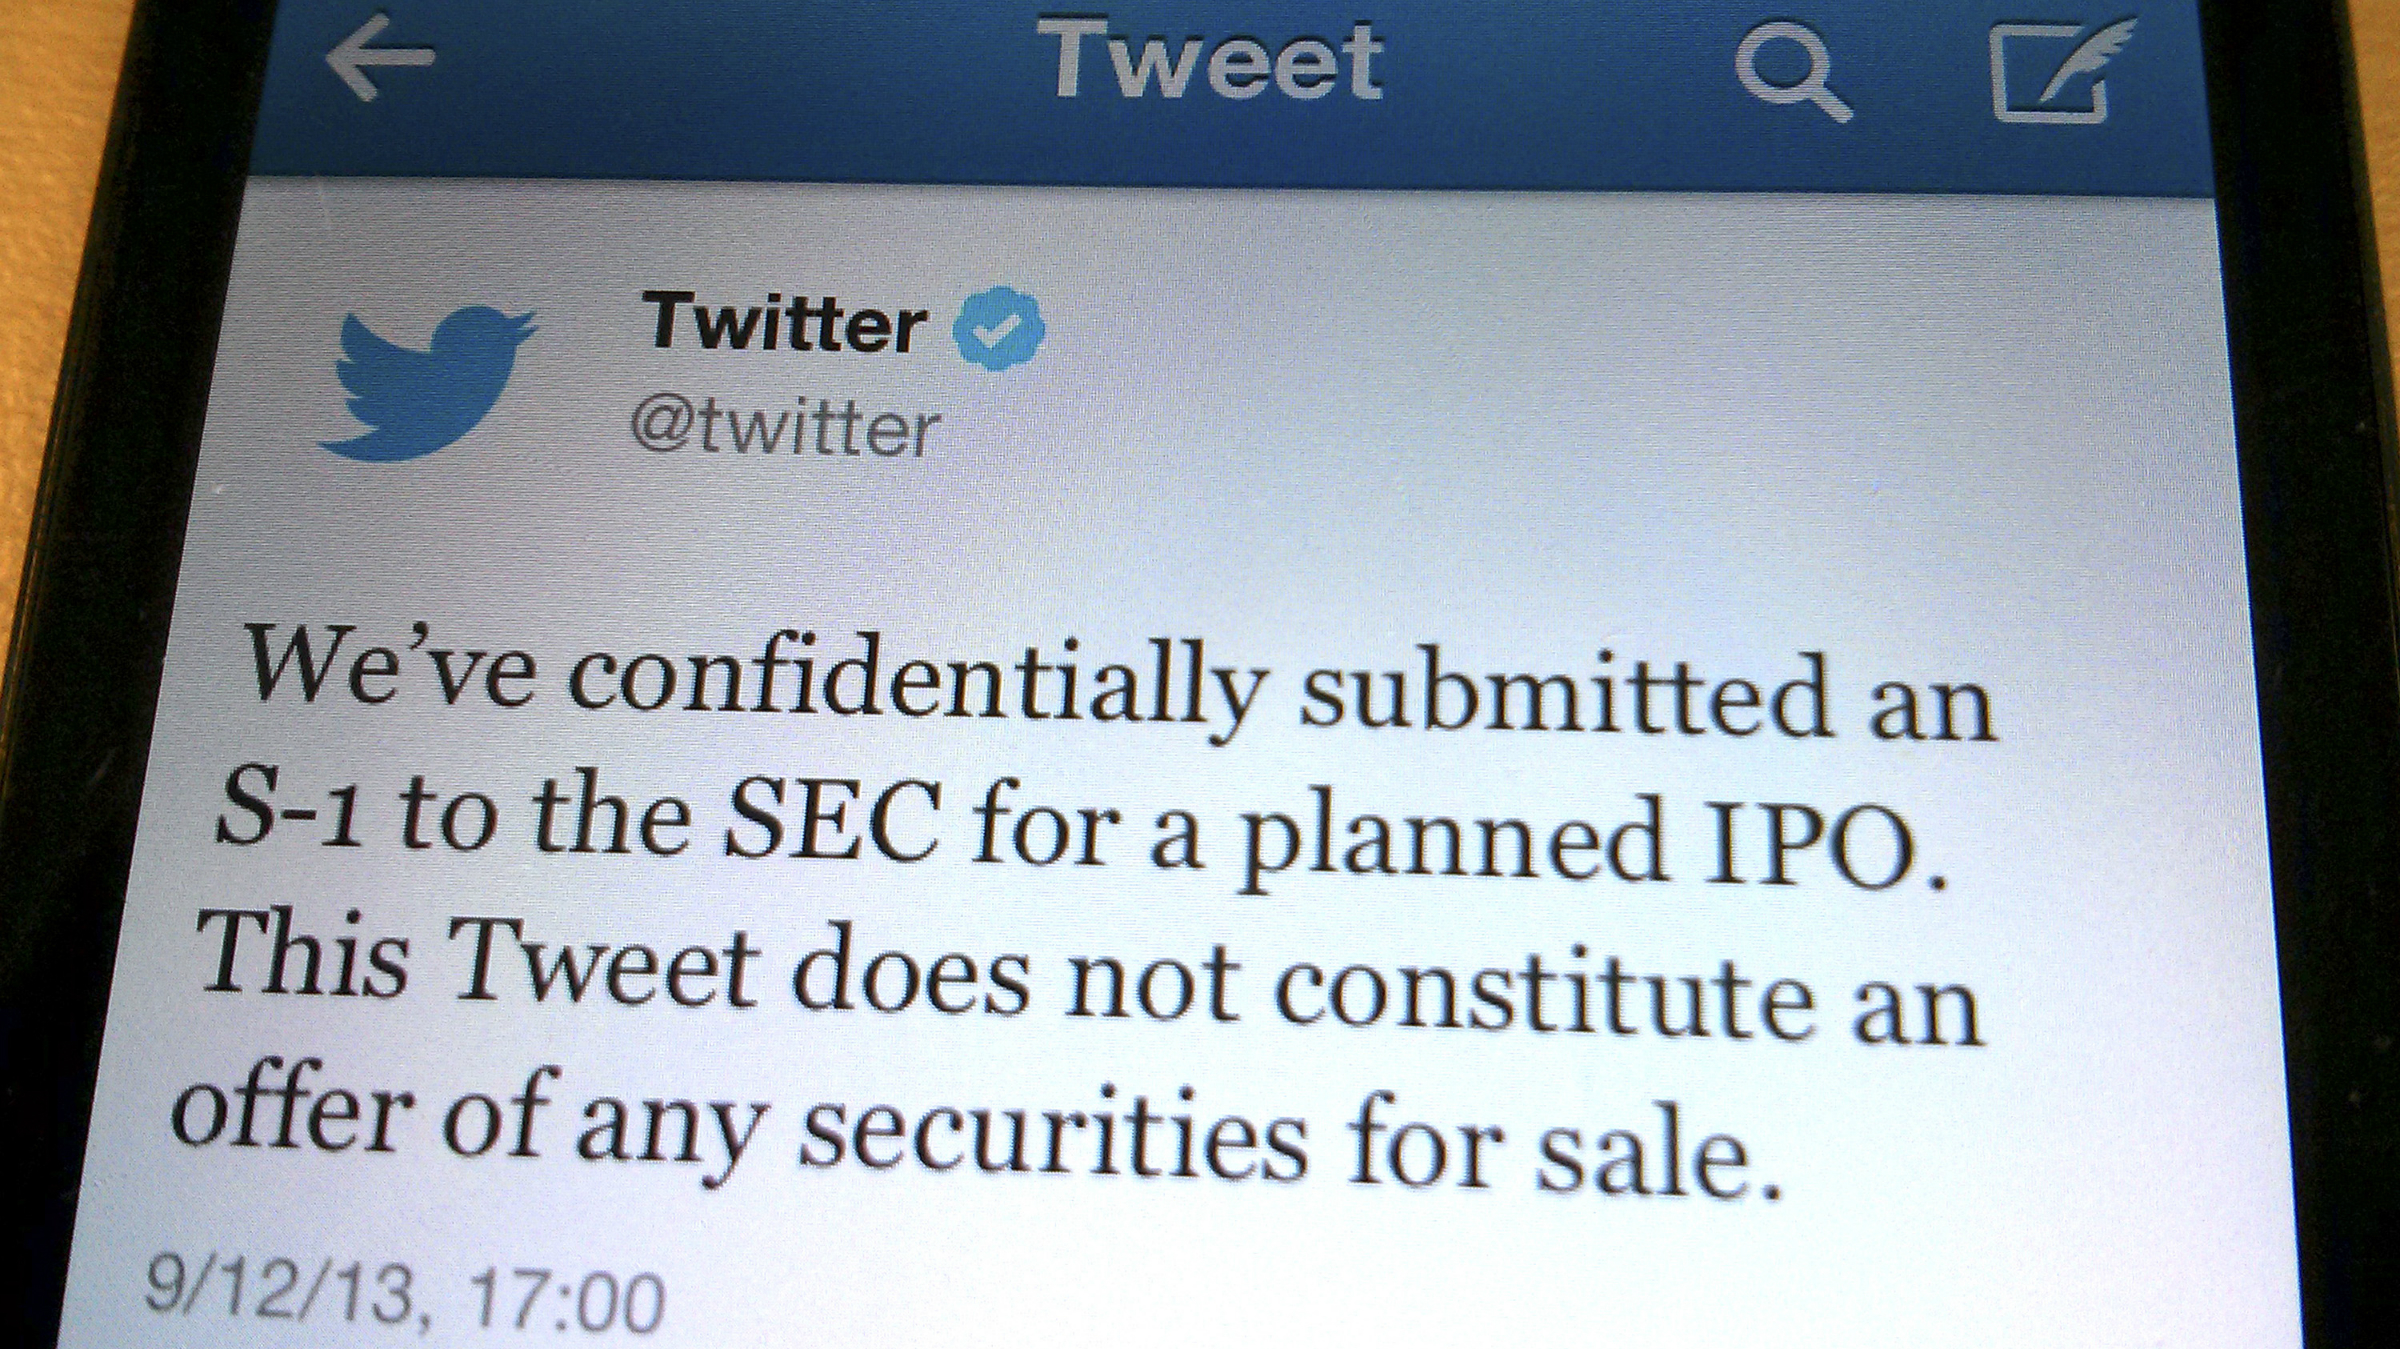 A tweet from Twitter Inc. announcing its initial public offering is shown in this photo illustration in Toronto, September 12, 2013. Twitter Inc has filed confidentially for an initial public offering, the company said on Thursday, taking the first step toward what would be Silicon Valley's most anticipated debut since Facebook Inc's last year. REUTERS/Hyungwon Kang